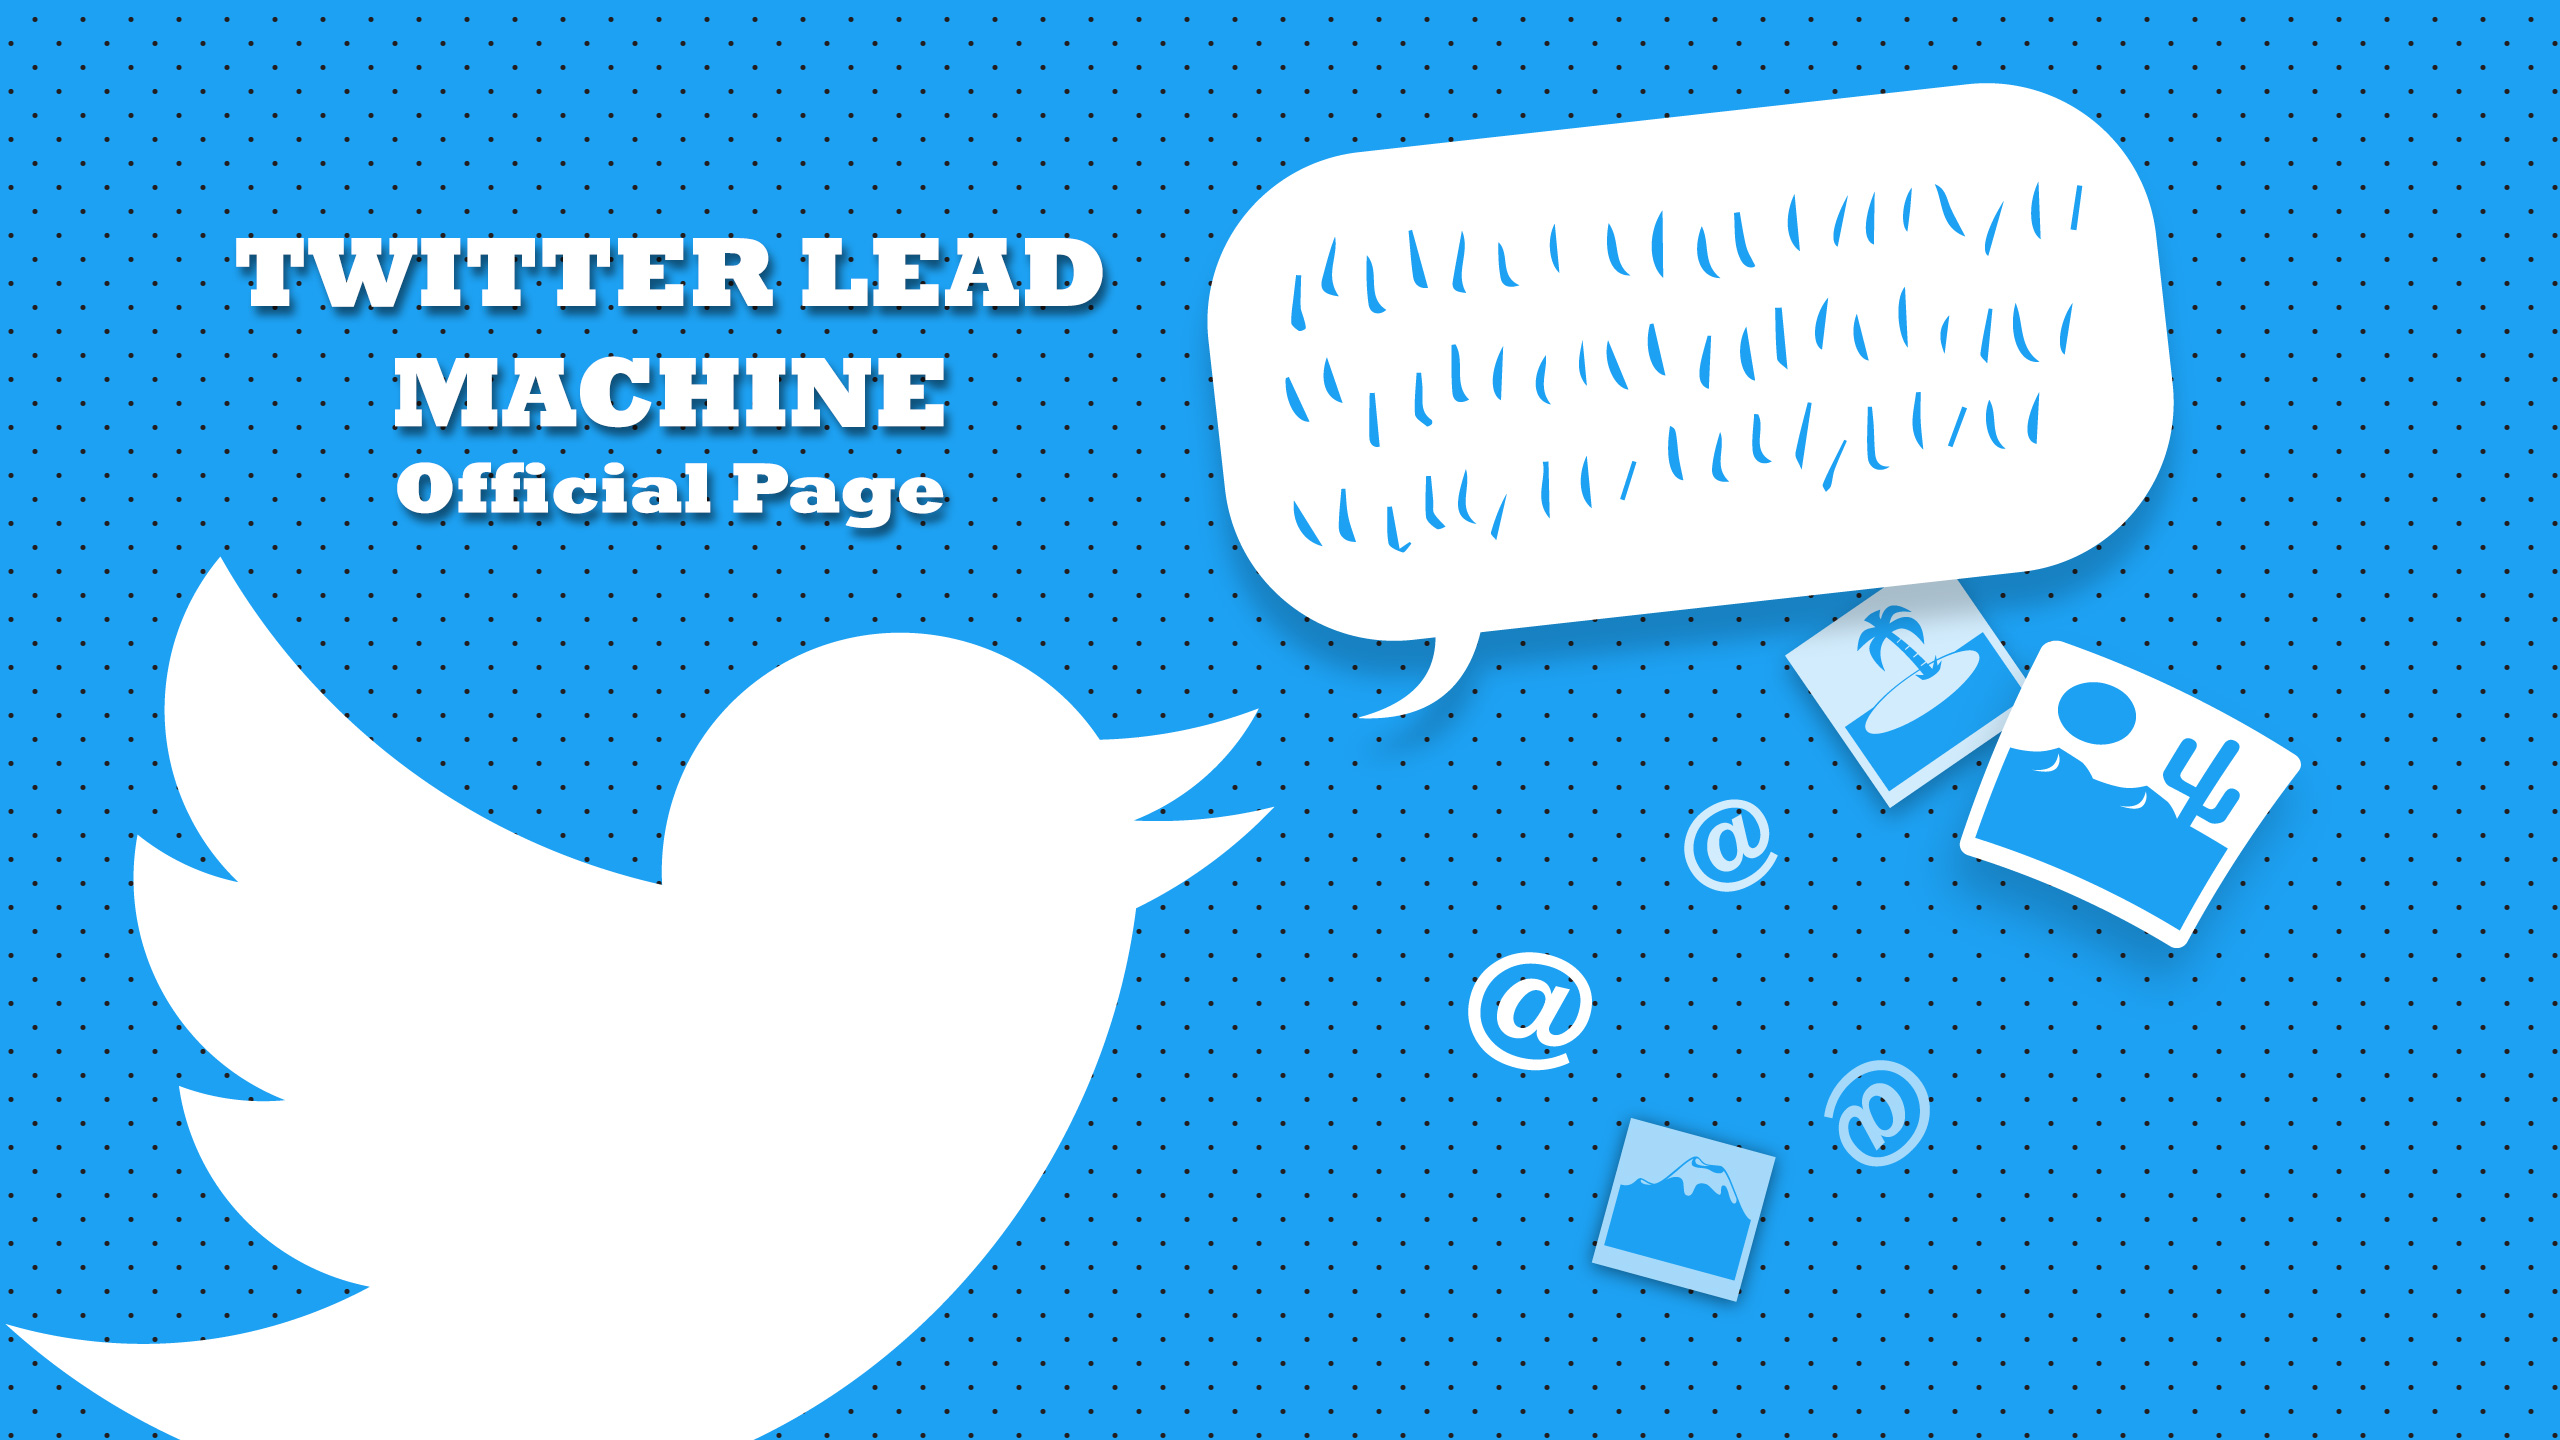 How to use Twitter • R. Paul Maynard's Blog